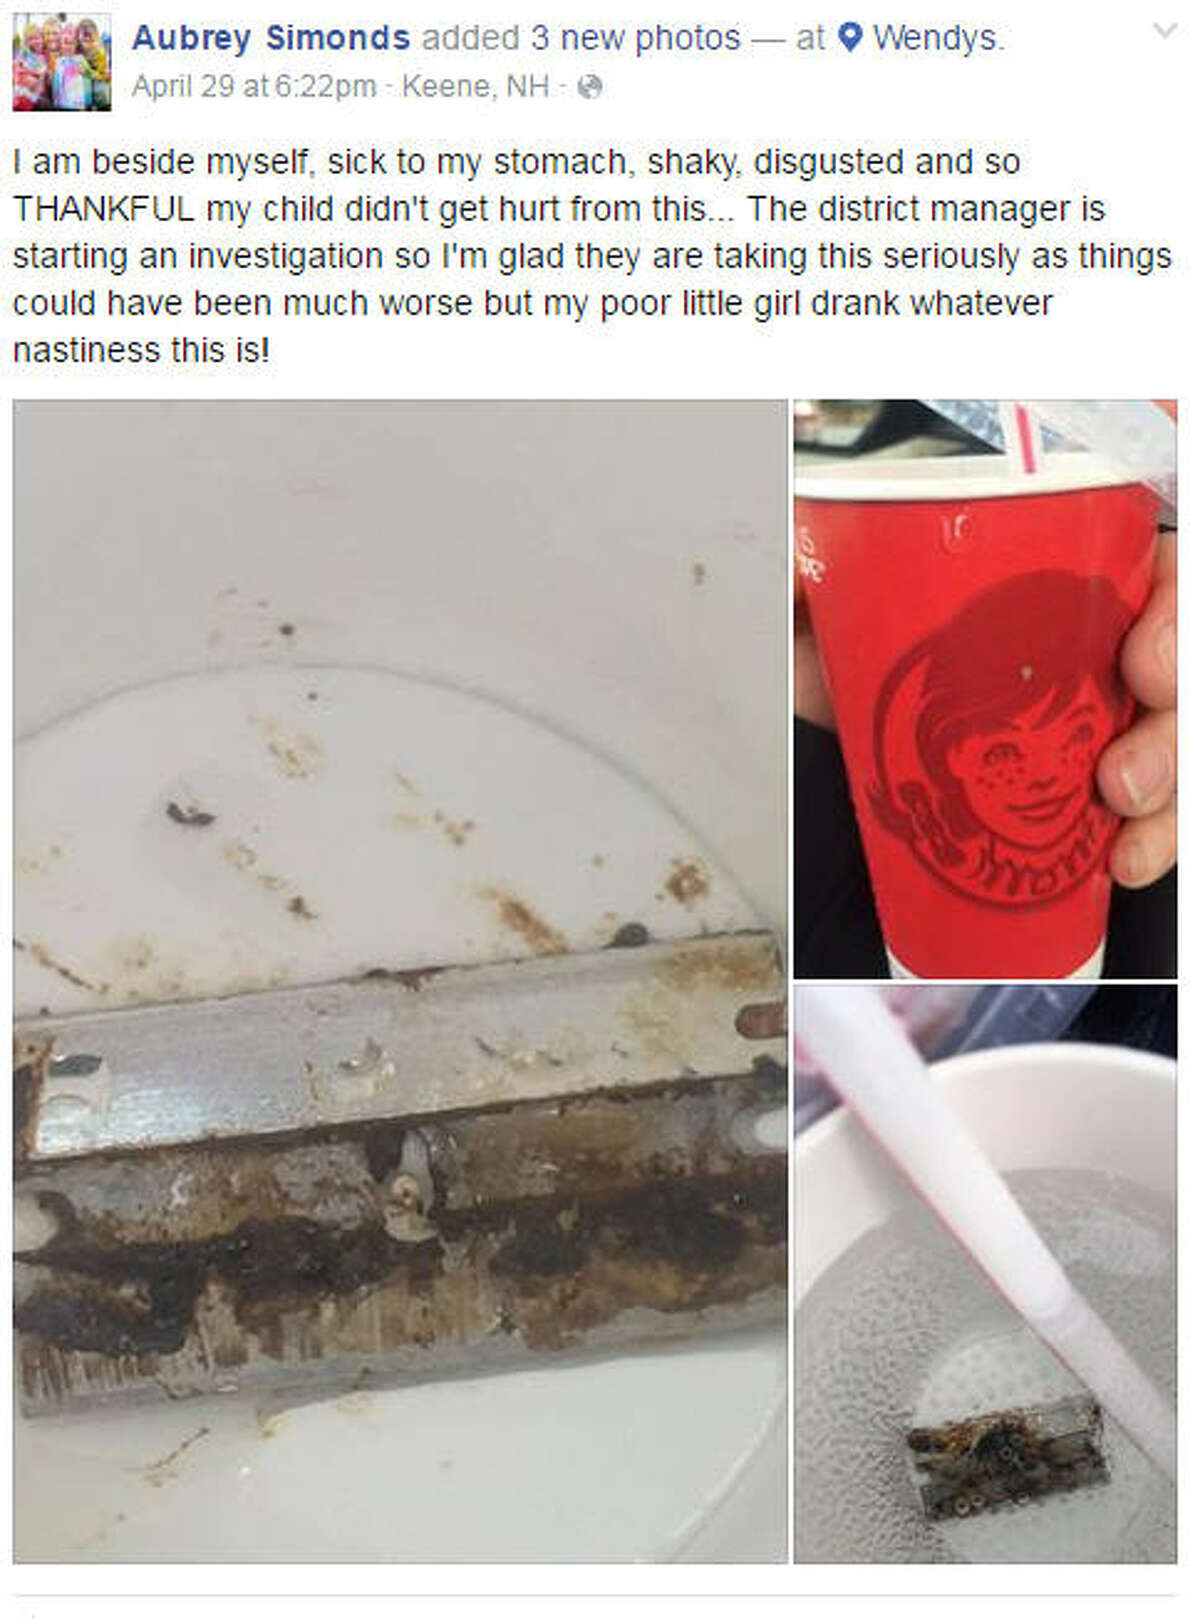 A New Hampshire woman said she found a razor blade in her daughter's soda at a local Wendy's. She posted photos on Facebook.